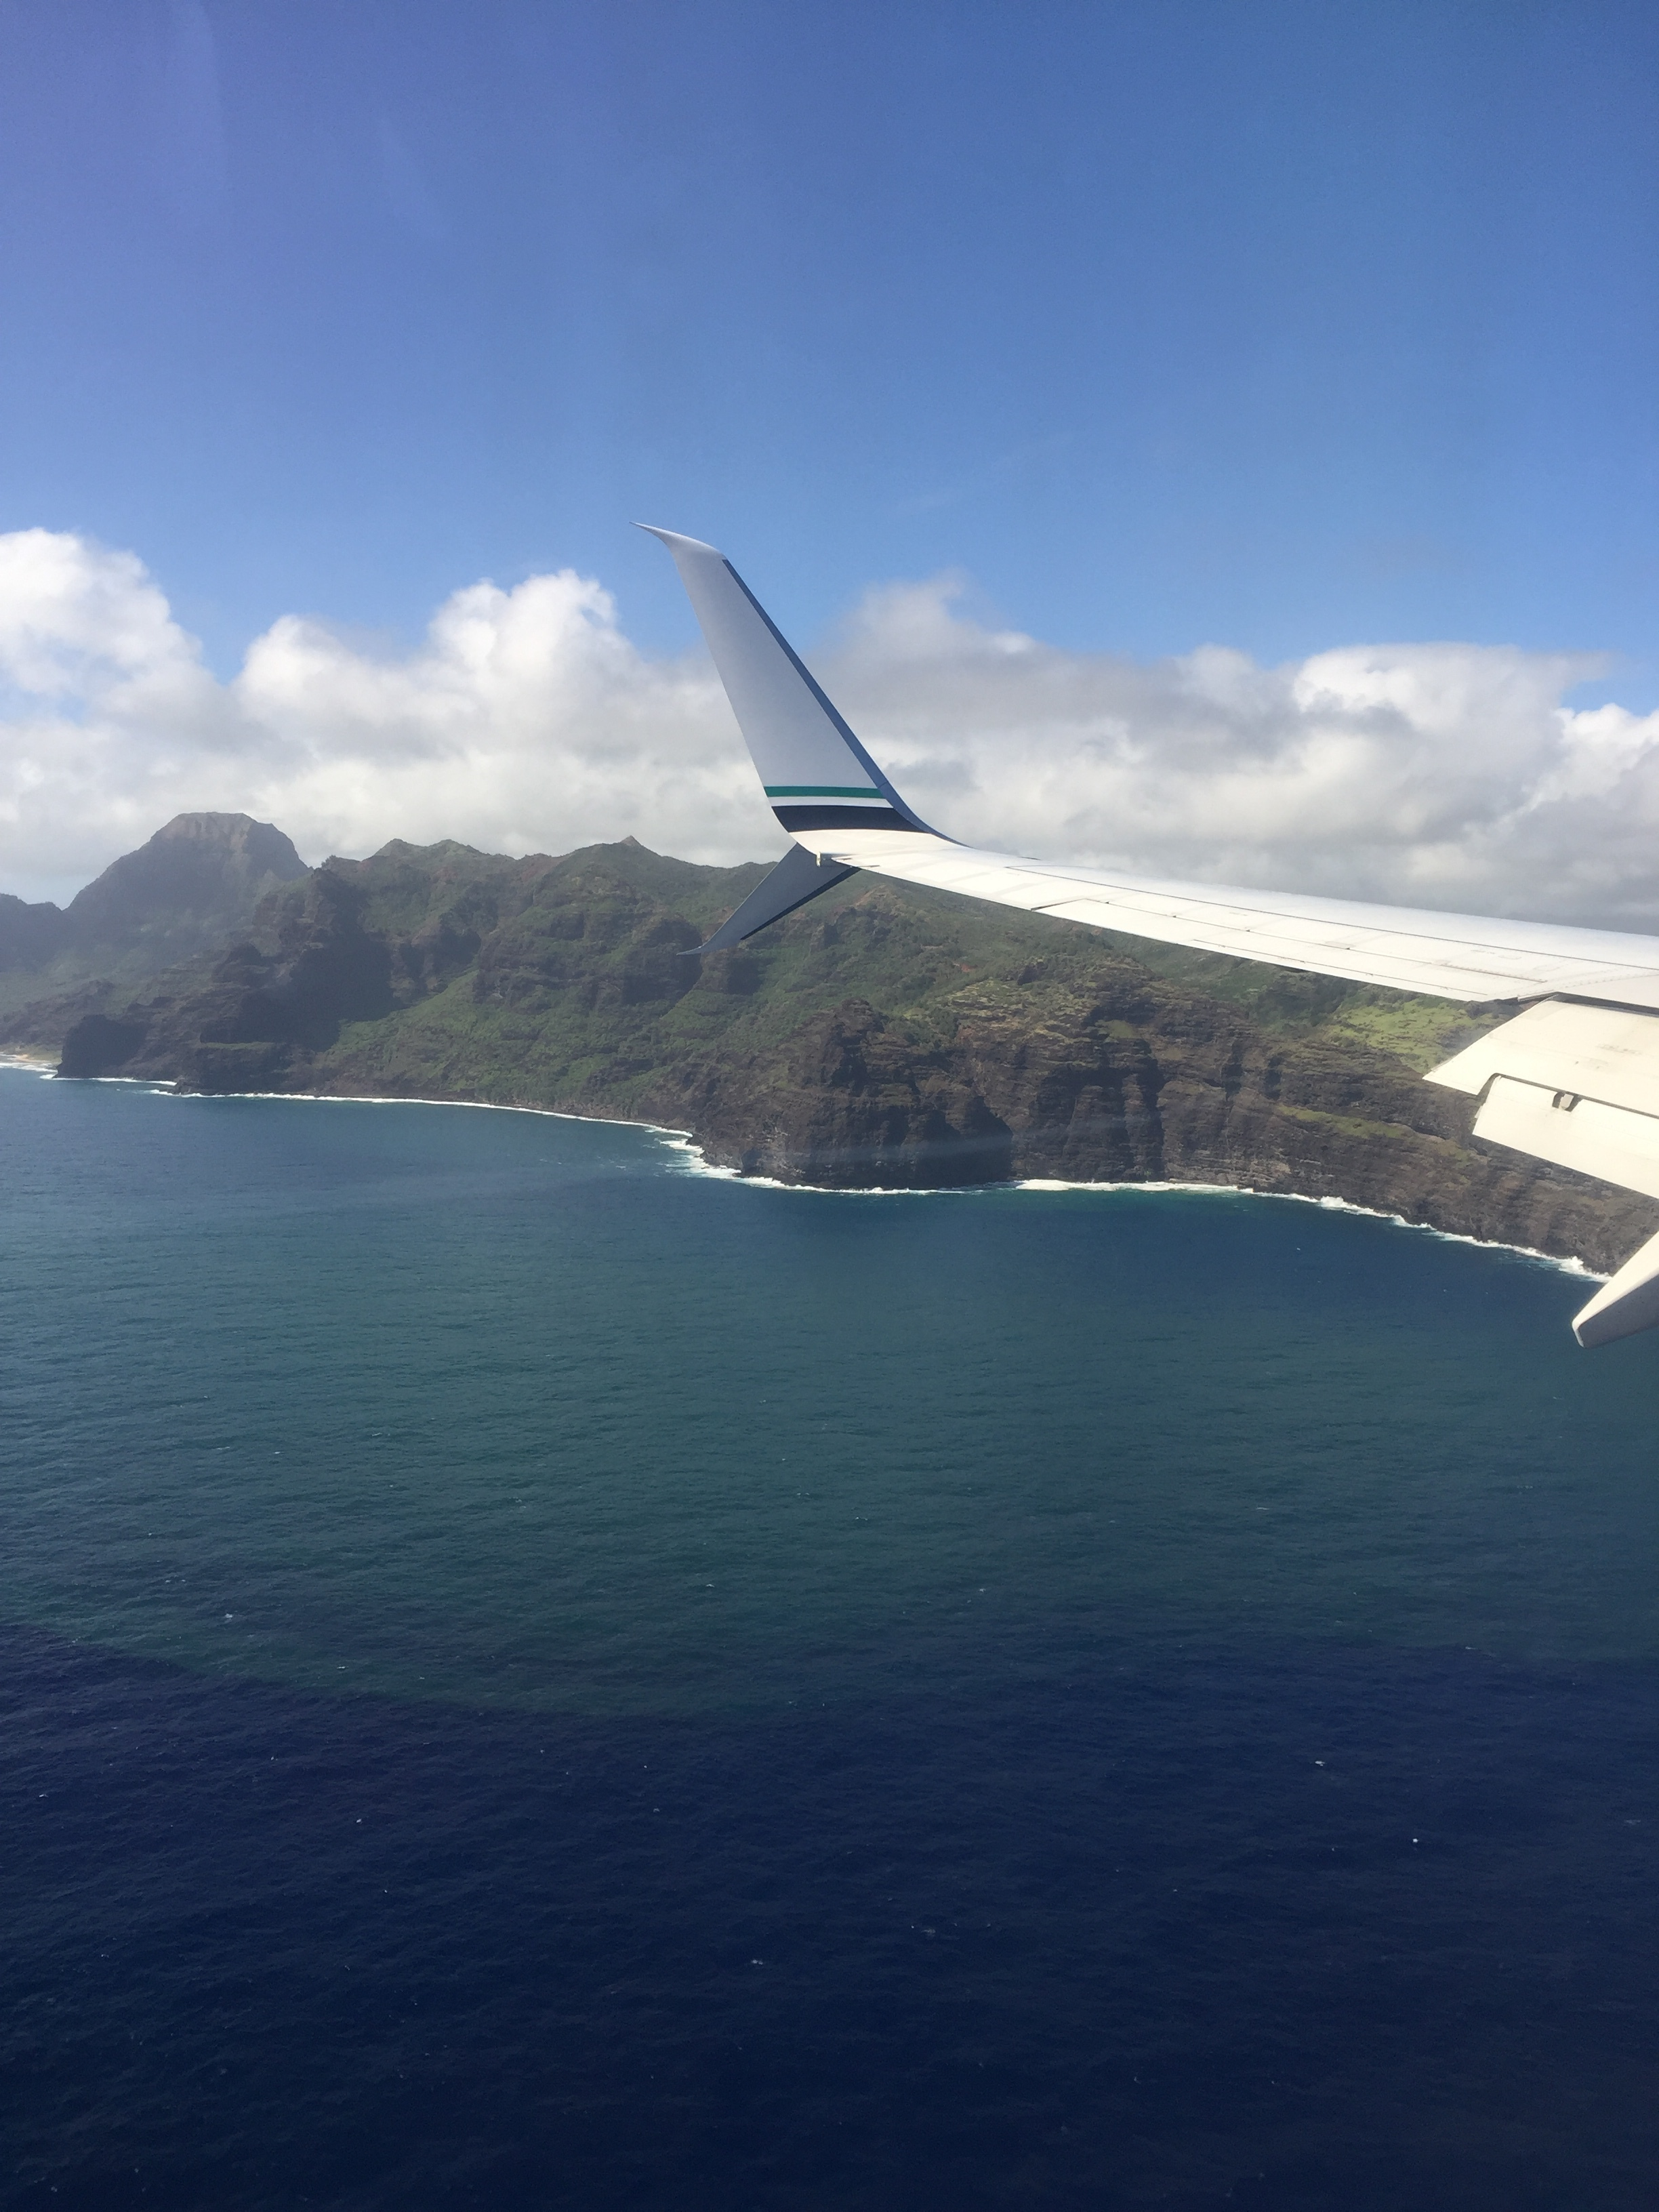 Coming in to Lihue airport.